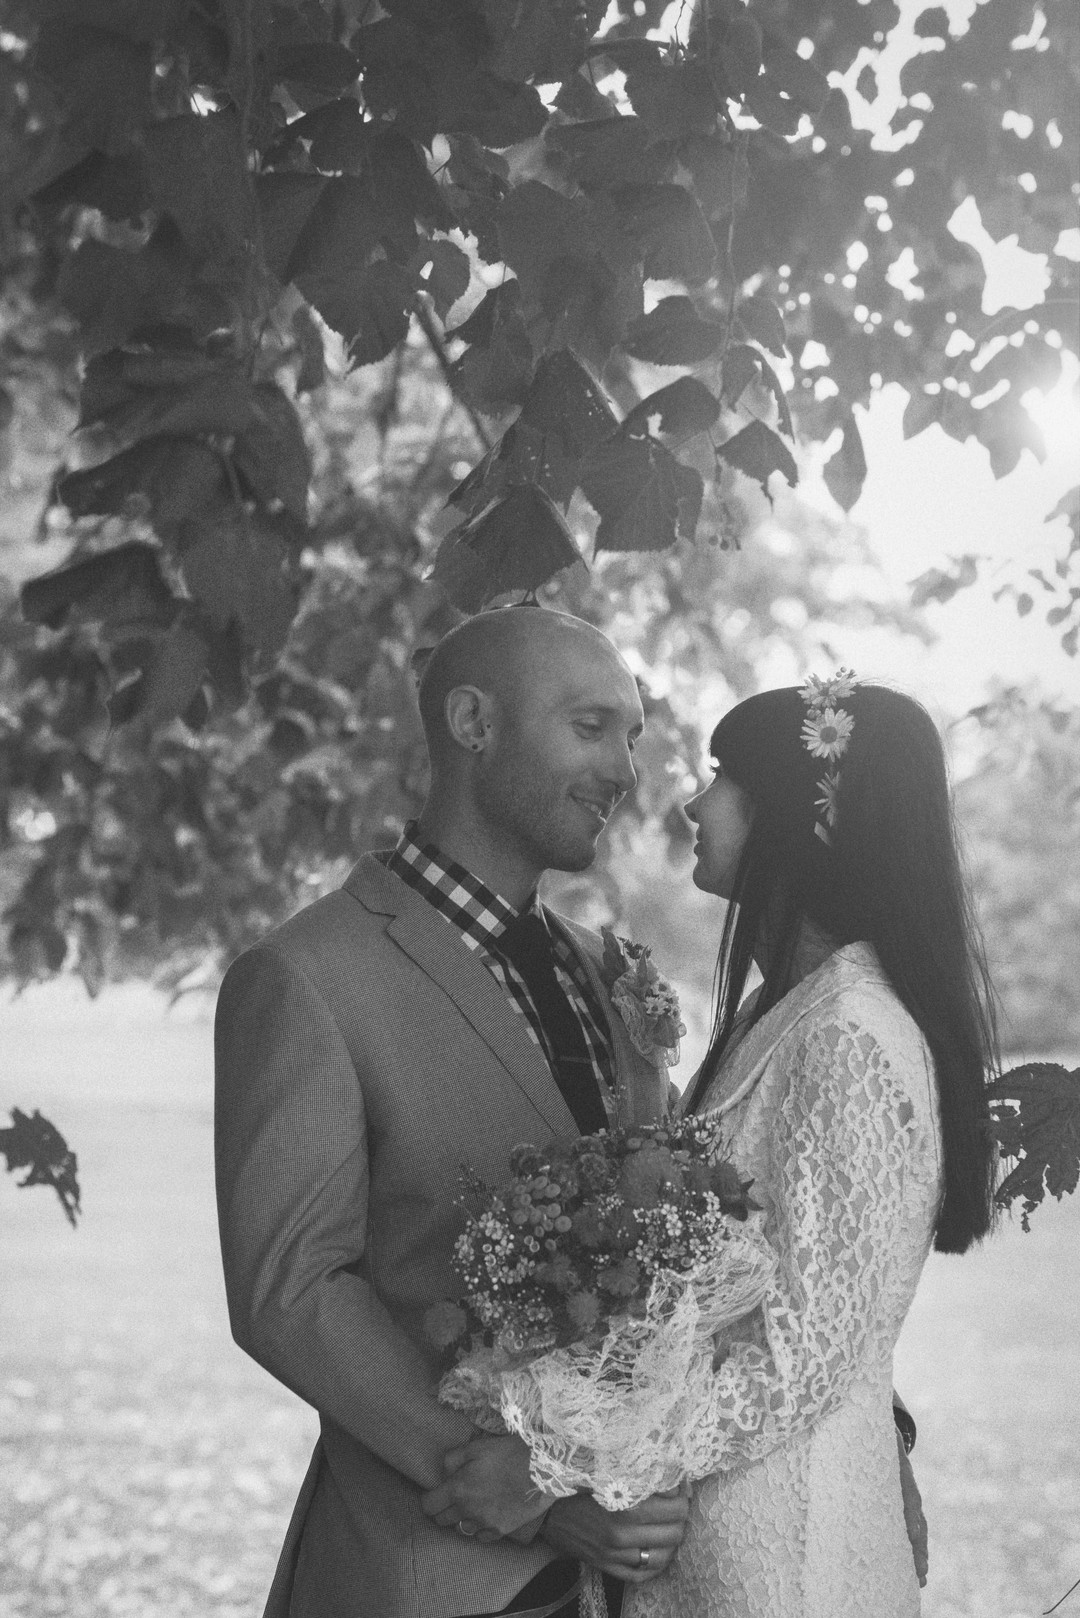 Laura_Richard_BerniPalumboPhotography_LRweddingbpphotographyHIGHRES064_big.JPG